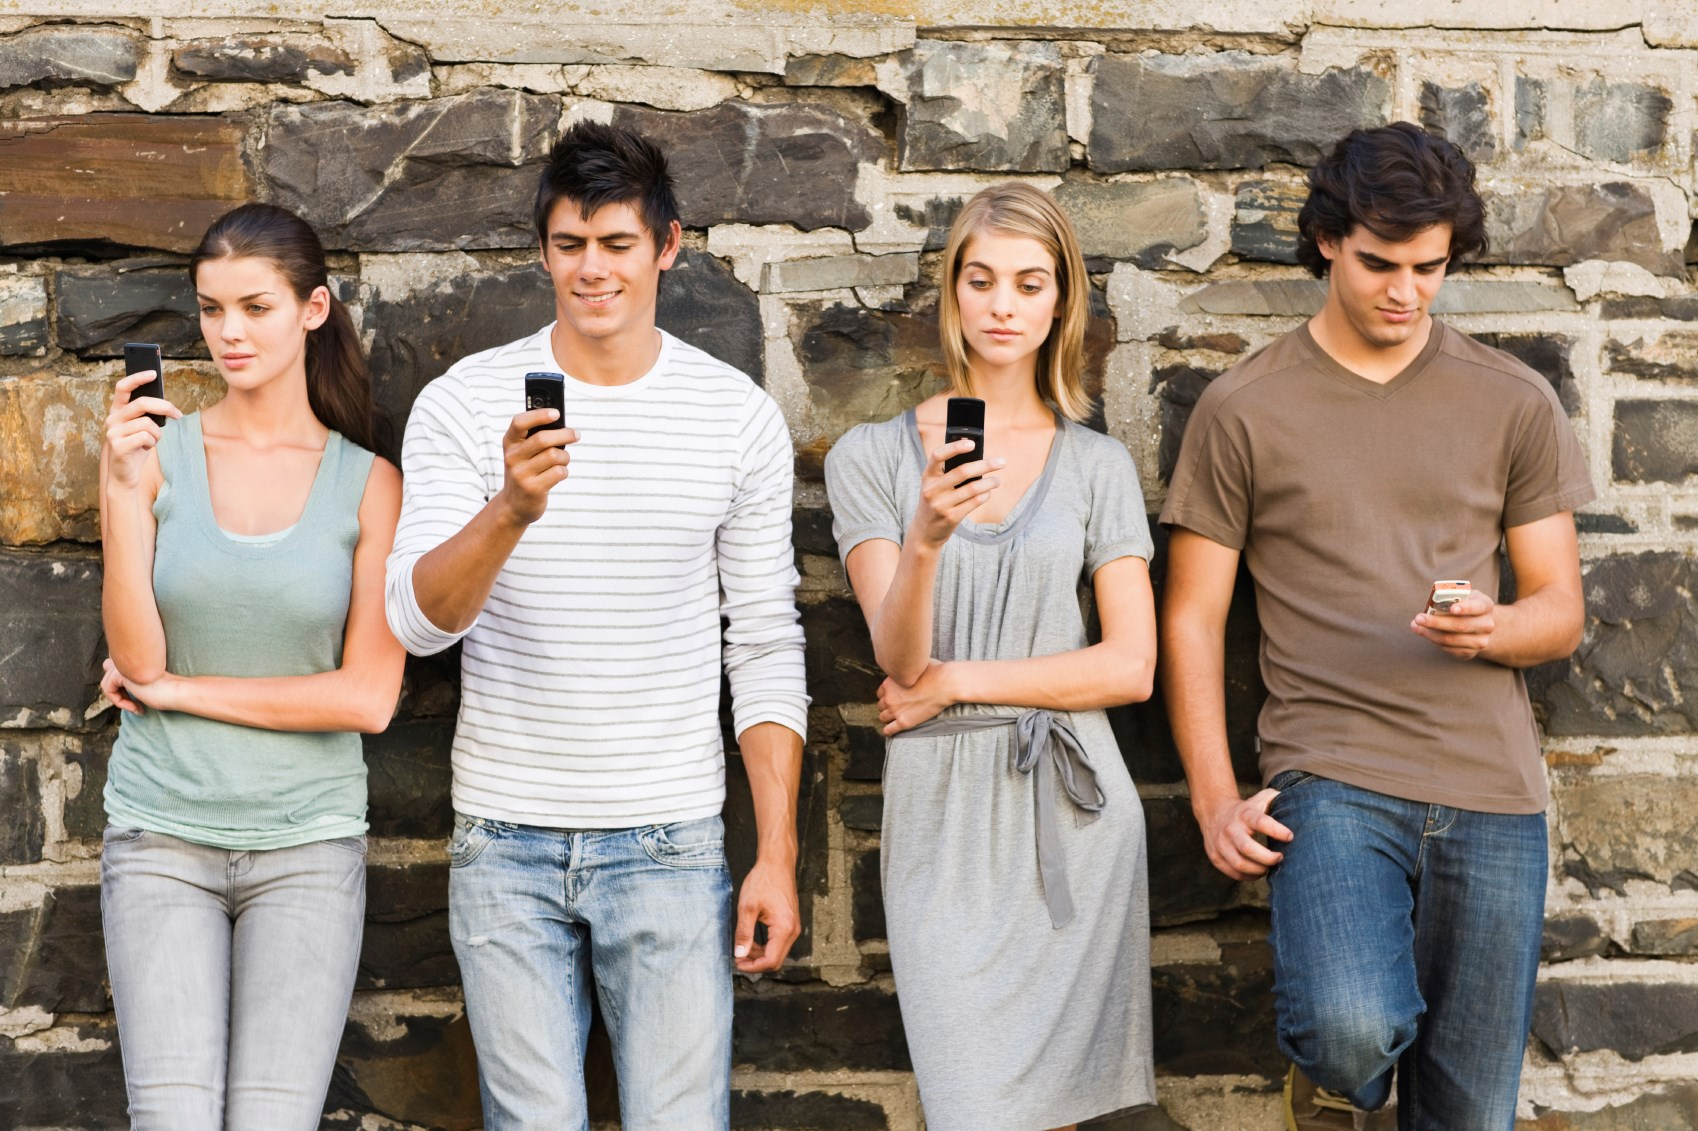 Millennials don't care about traditional healthcare: study